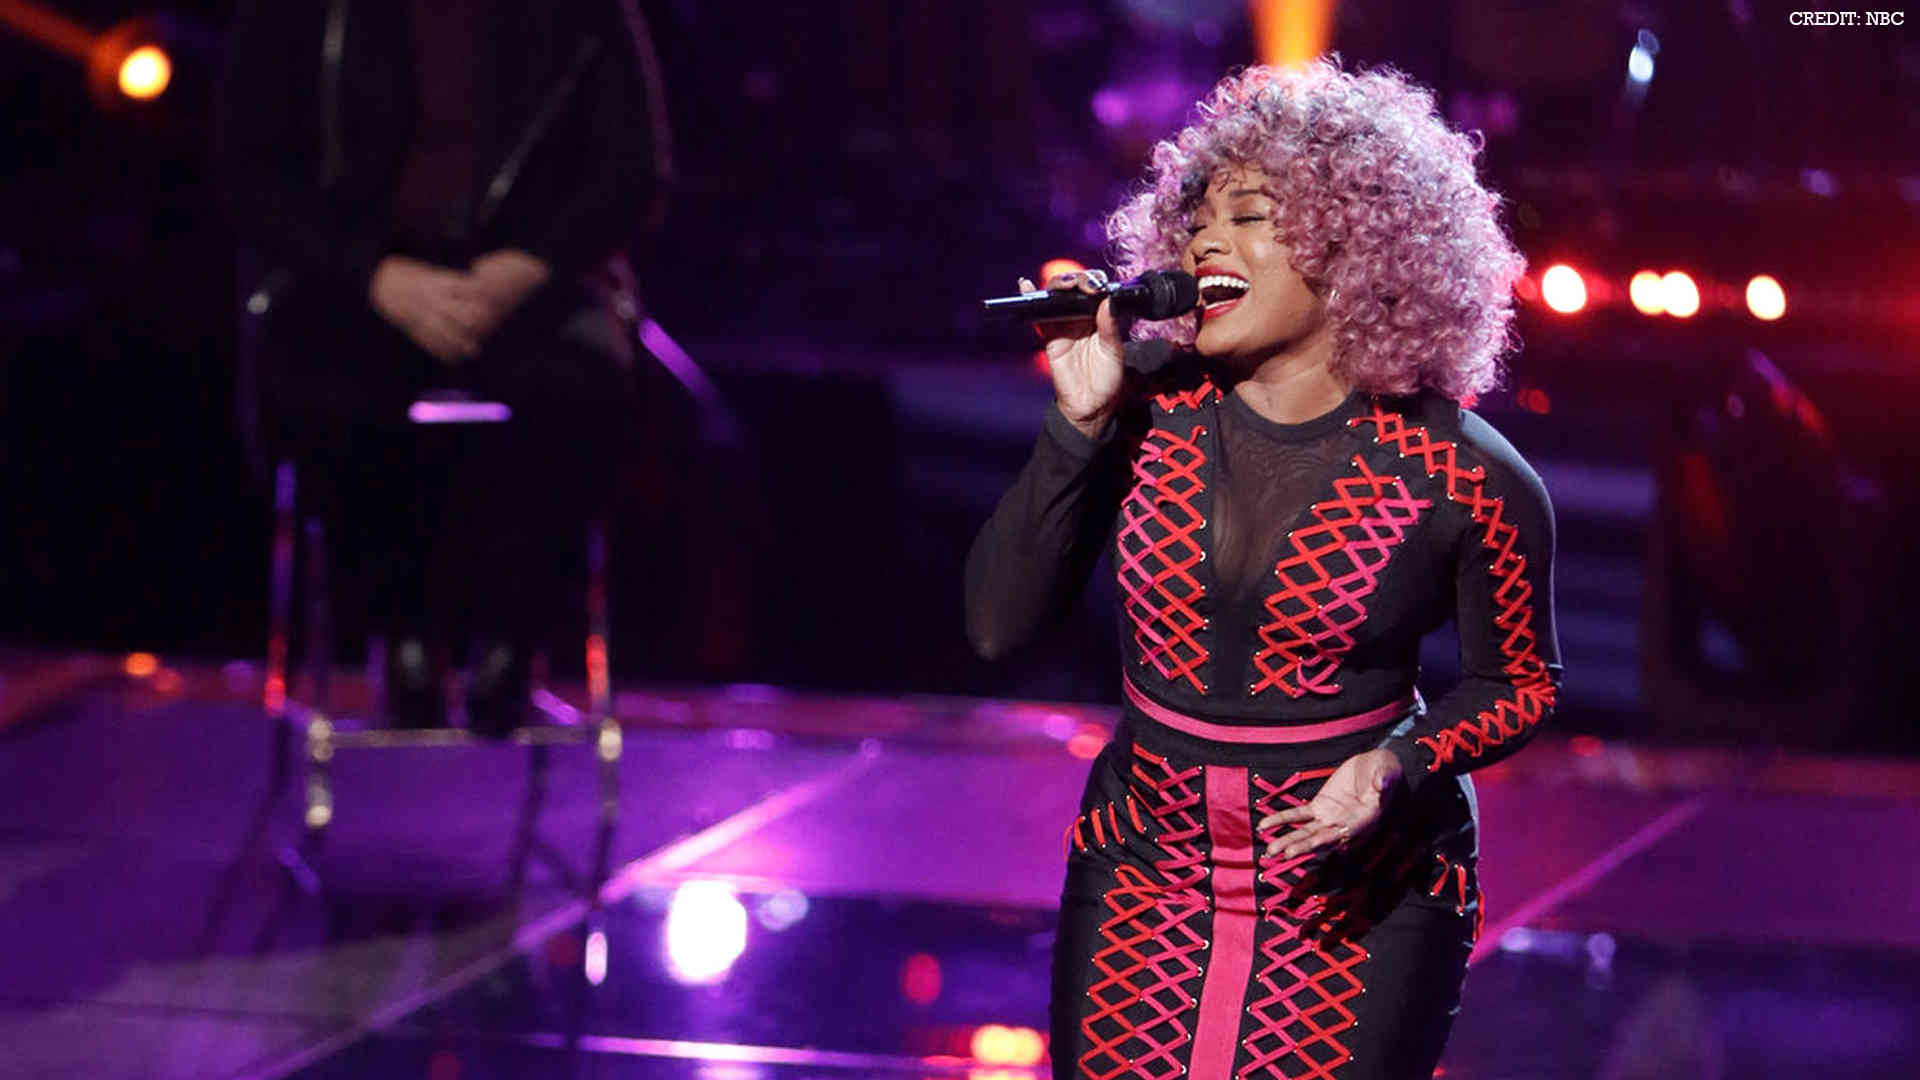 "Watch The Voice USA 2017 Knockout Miya Bass ""Castle on the Hill"" full Performance Video 2 April 2018"